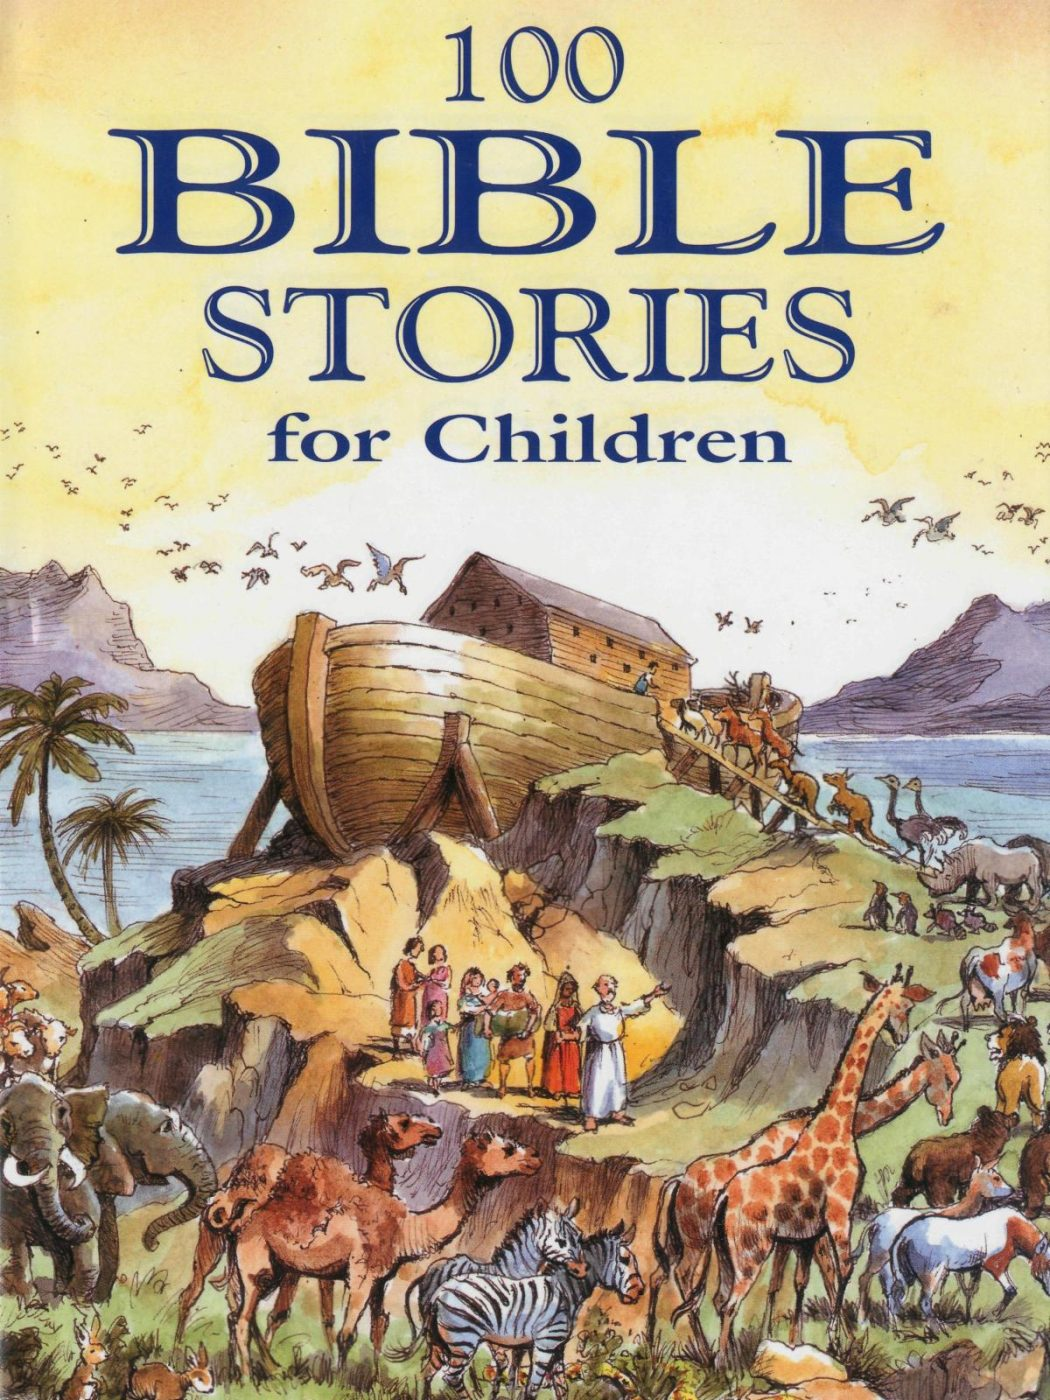 09449_1-award-publications-100-bible-stories-for-children 12 Fashion Trends of Summer 2019 and How to Style Them